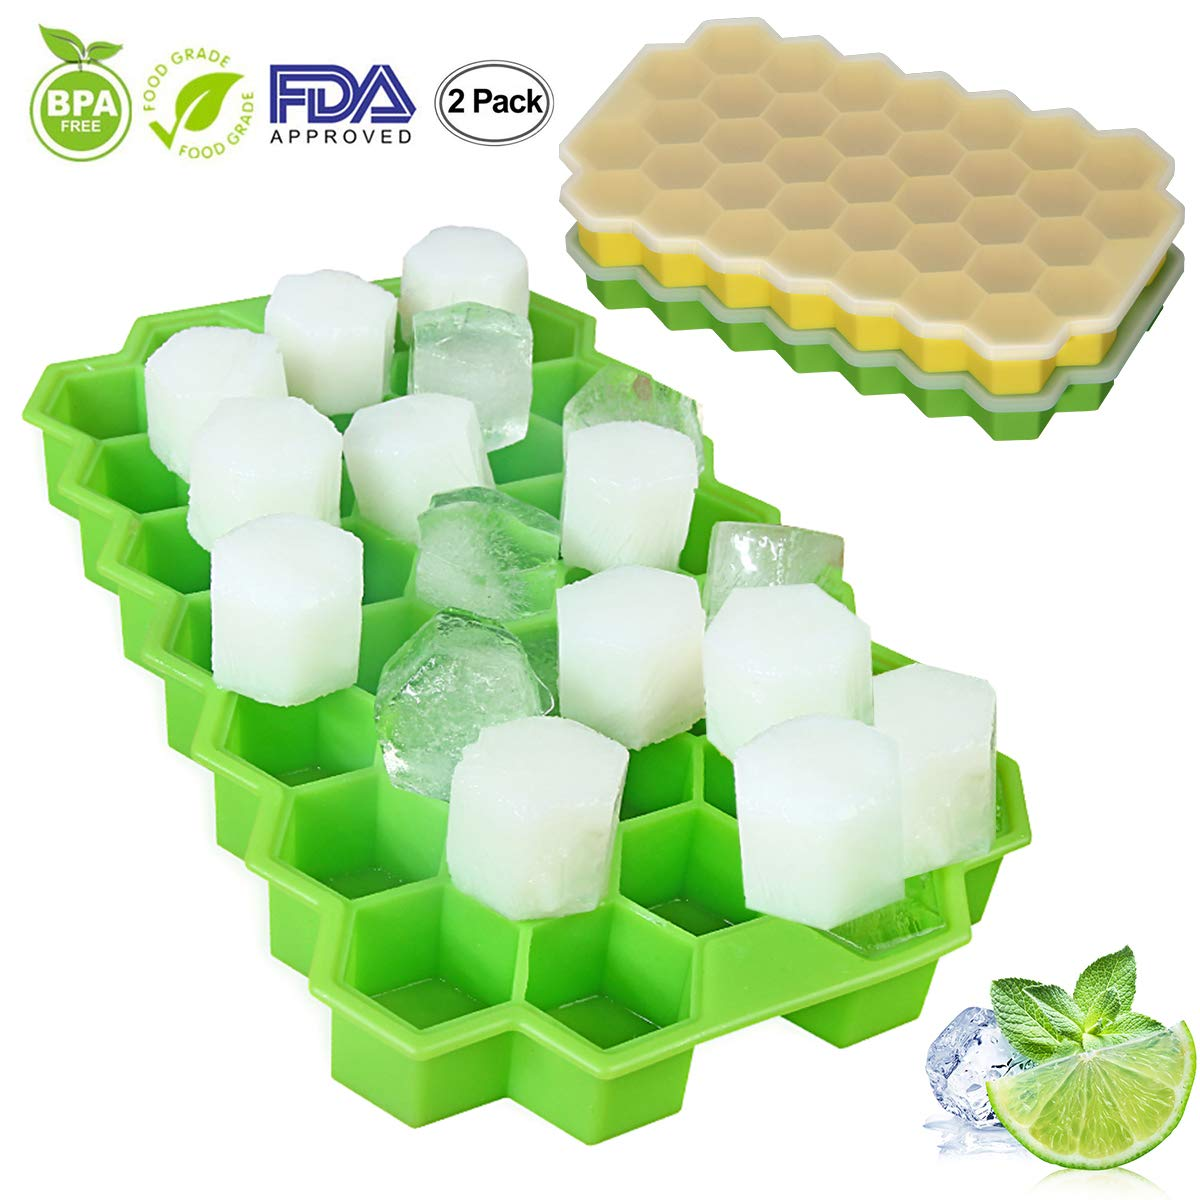 2 Packs Ice Cube Trays, Food Grade Silicone Ice Trays with Free Lids, 74 Cubes Flexible Stackable Easy Release Freezer Molds for Home Cocktail Whiskey DIY Food, Green & Yellow